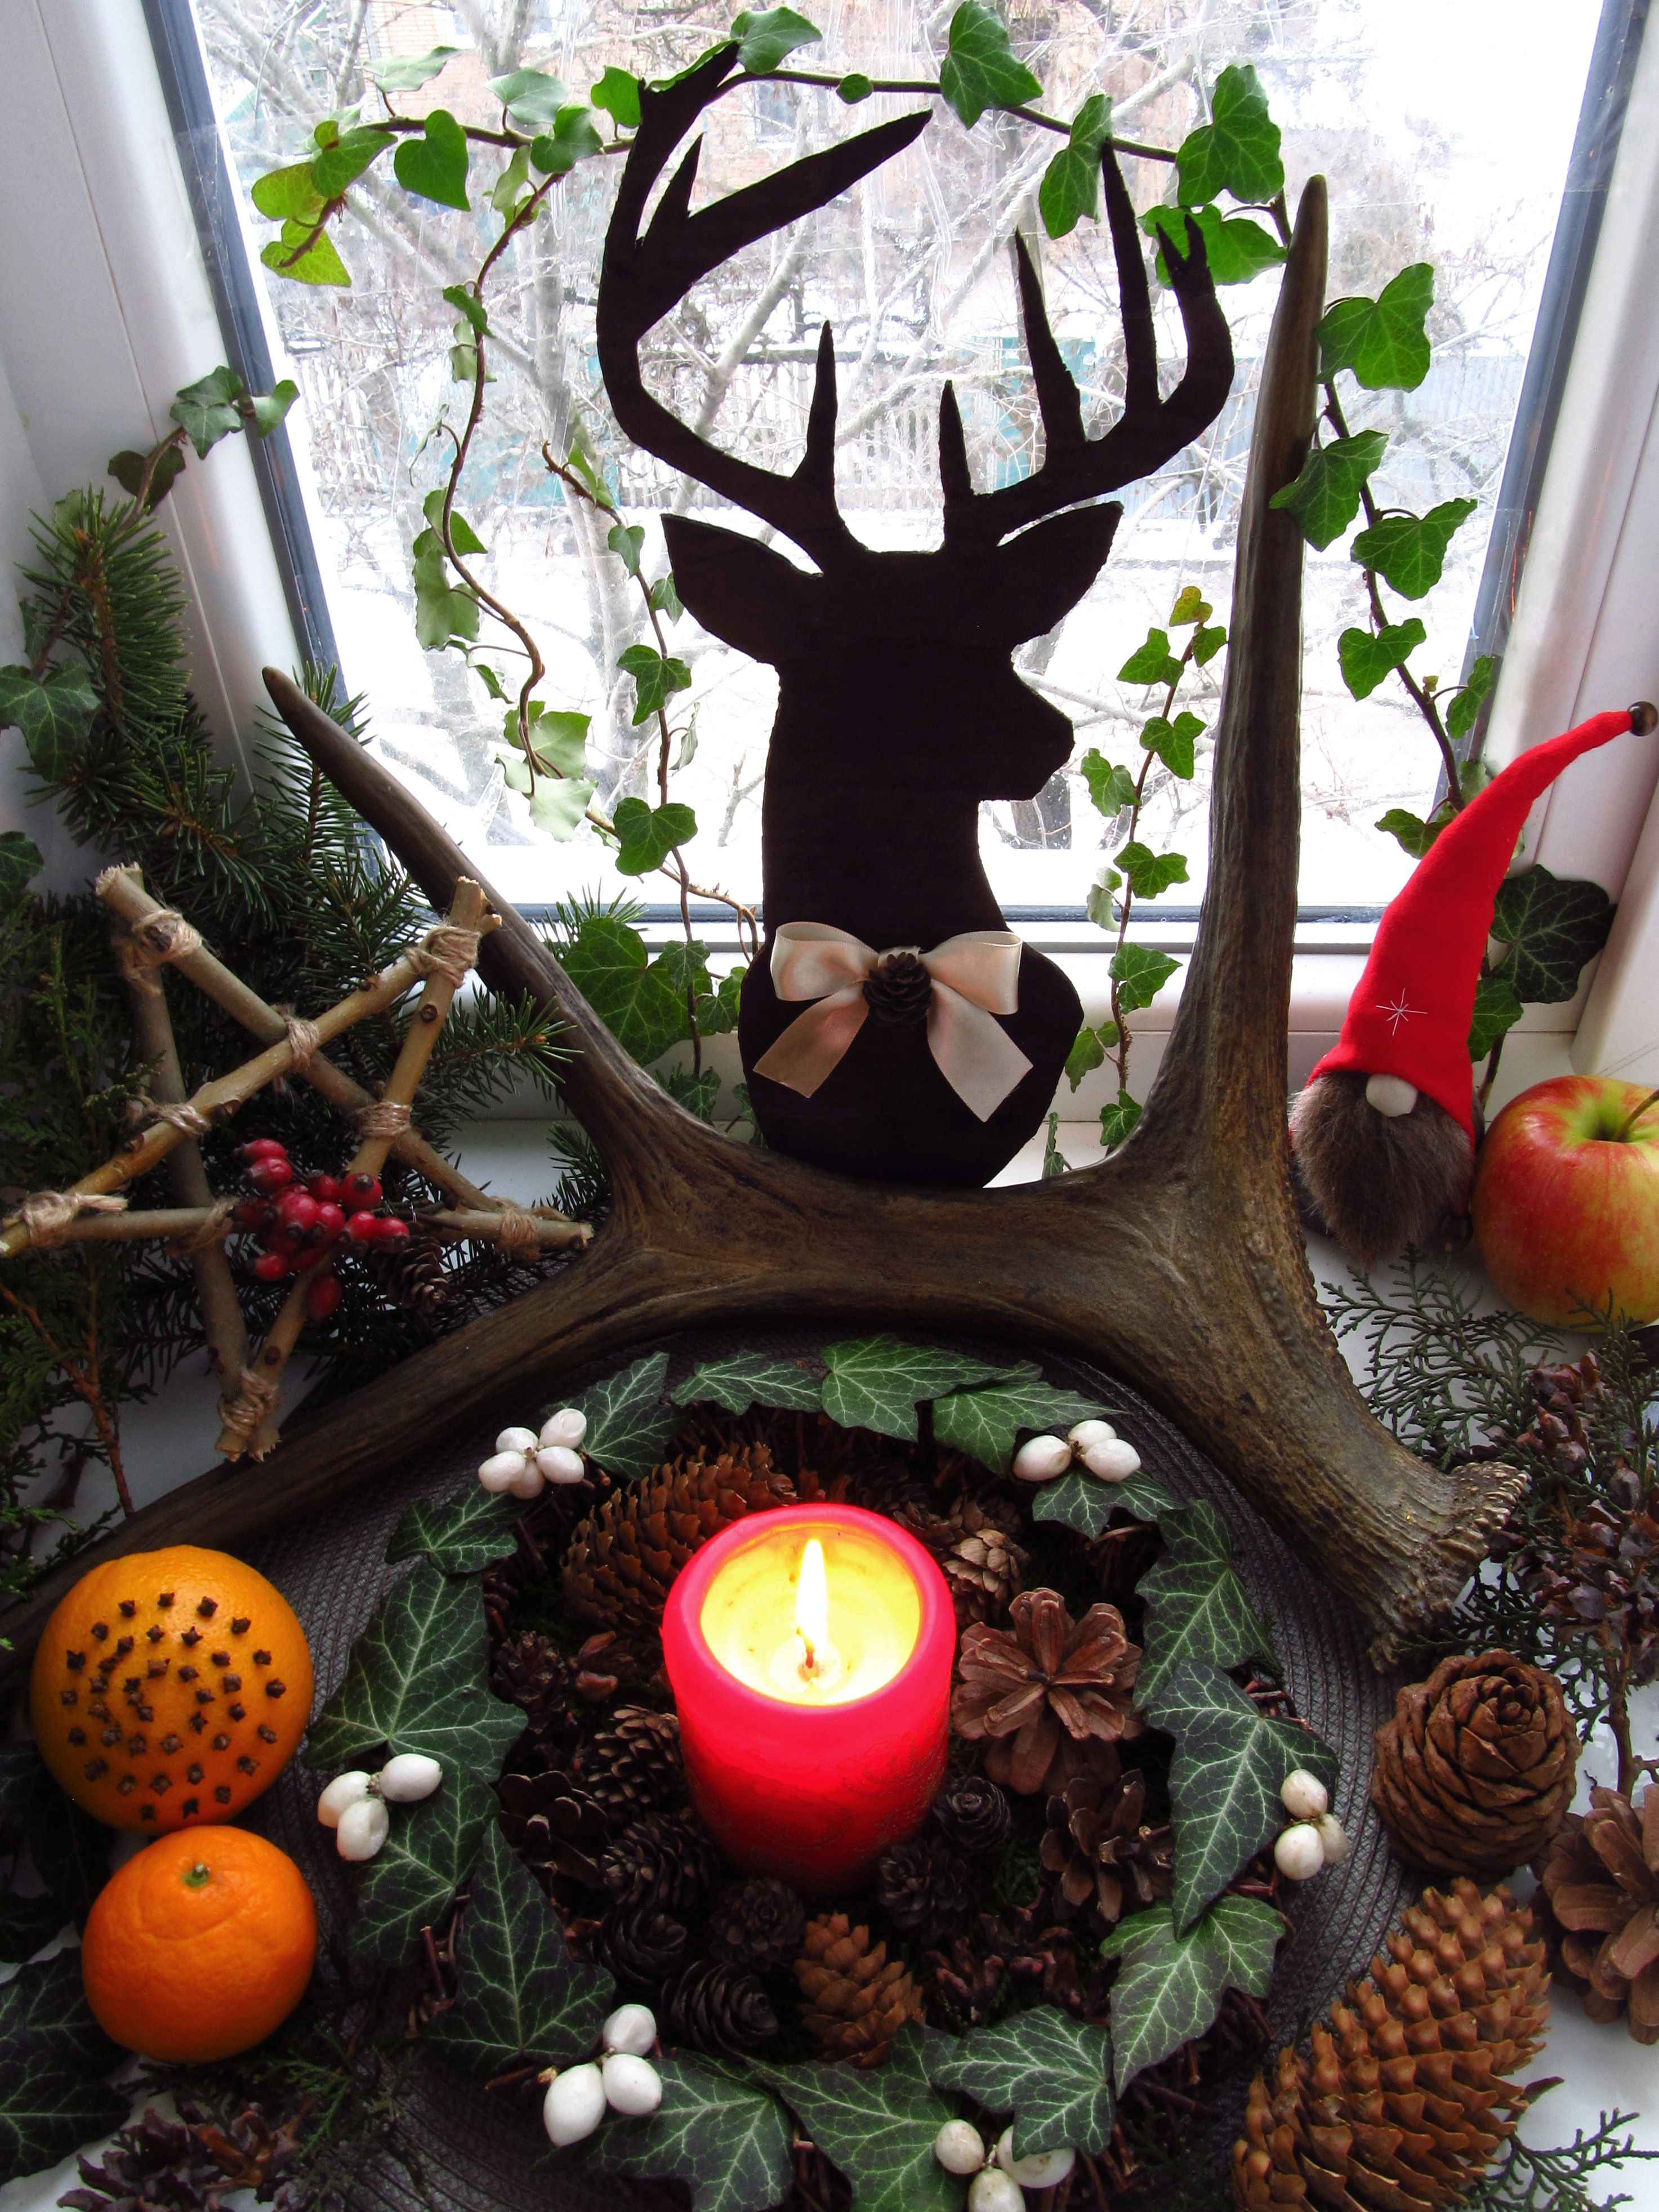 The Wheel of the Year - Yule | Yule wicca, Yule traditions ...